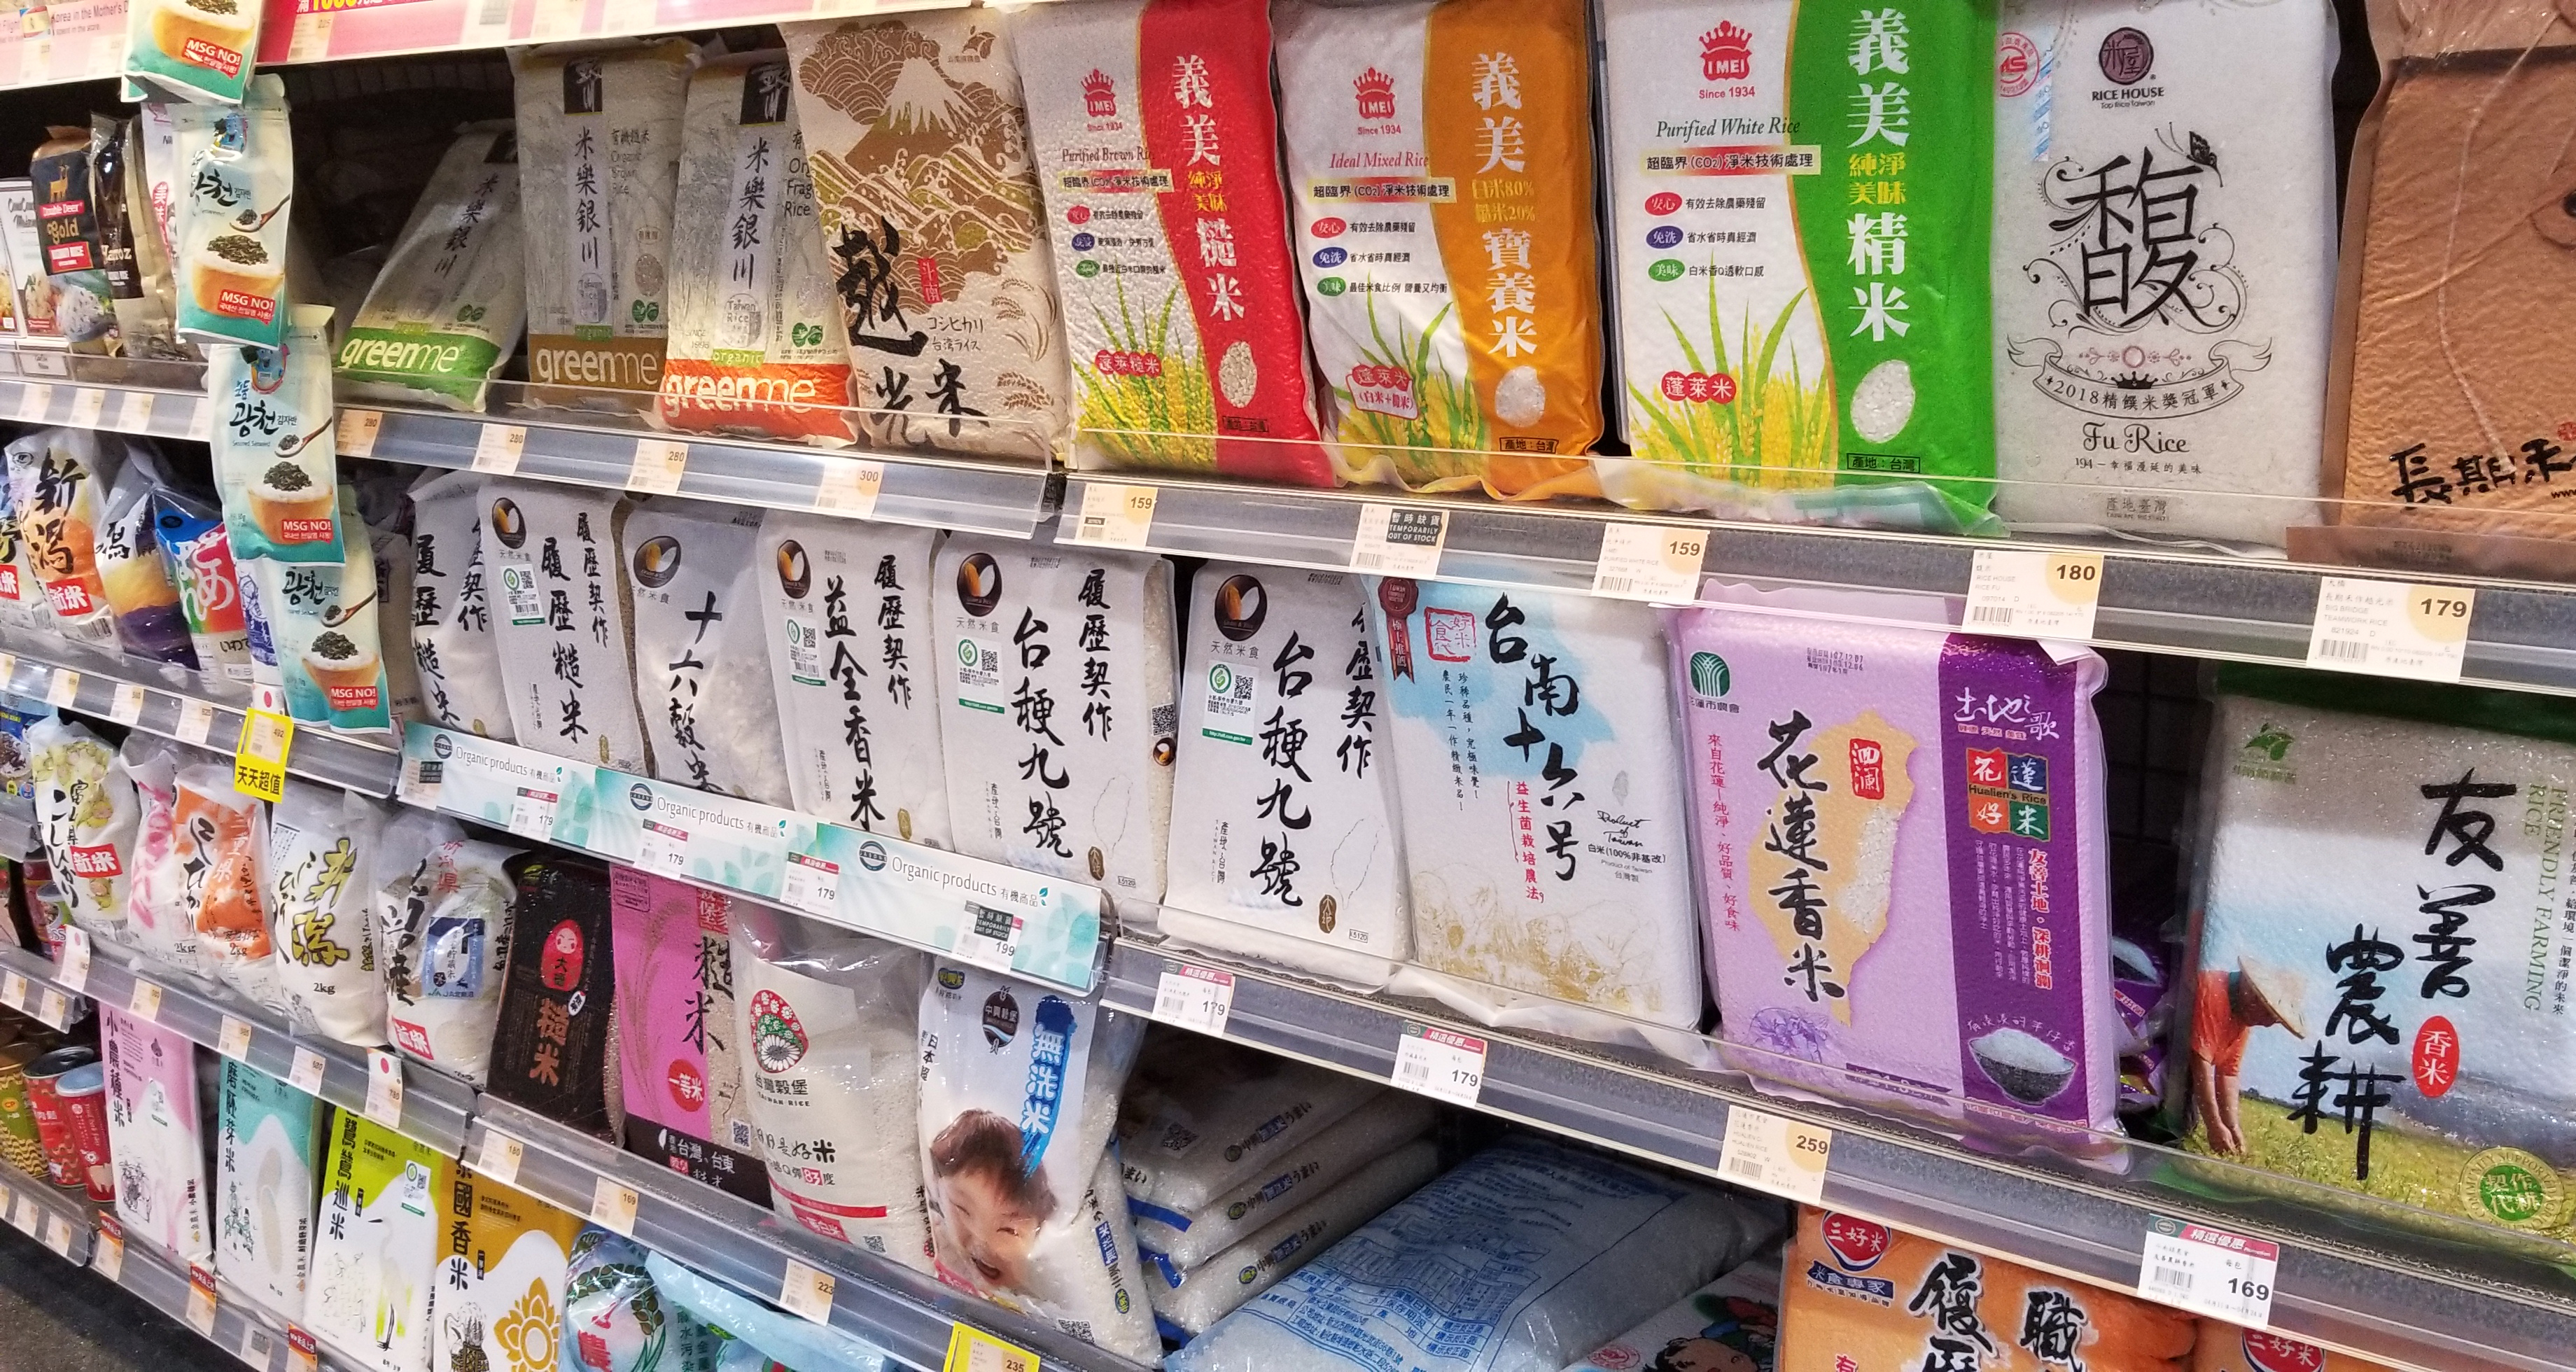 Grocery store rice aisle in Taiwan filled with colorful packages